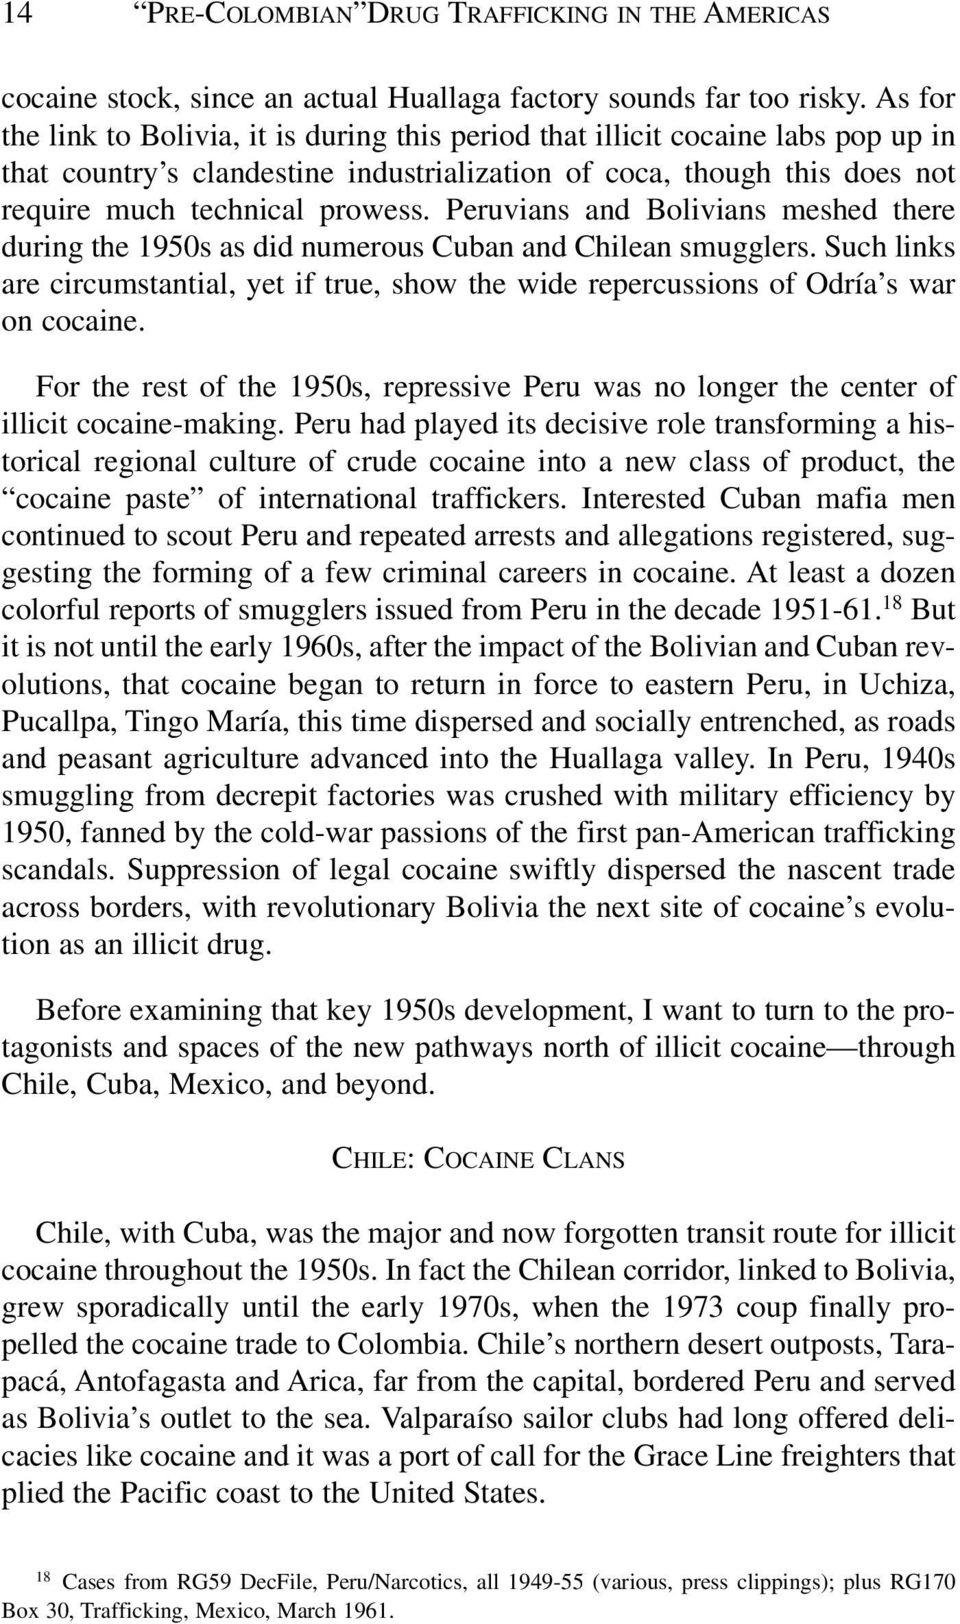 Peruvians and Bolivians meshed there during the 1950s as did numerous Cuban and Chilean smugglers. Such links are circumstantial, yet if true, show the wide repercussions of Odría s war on cocaine.